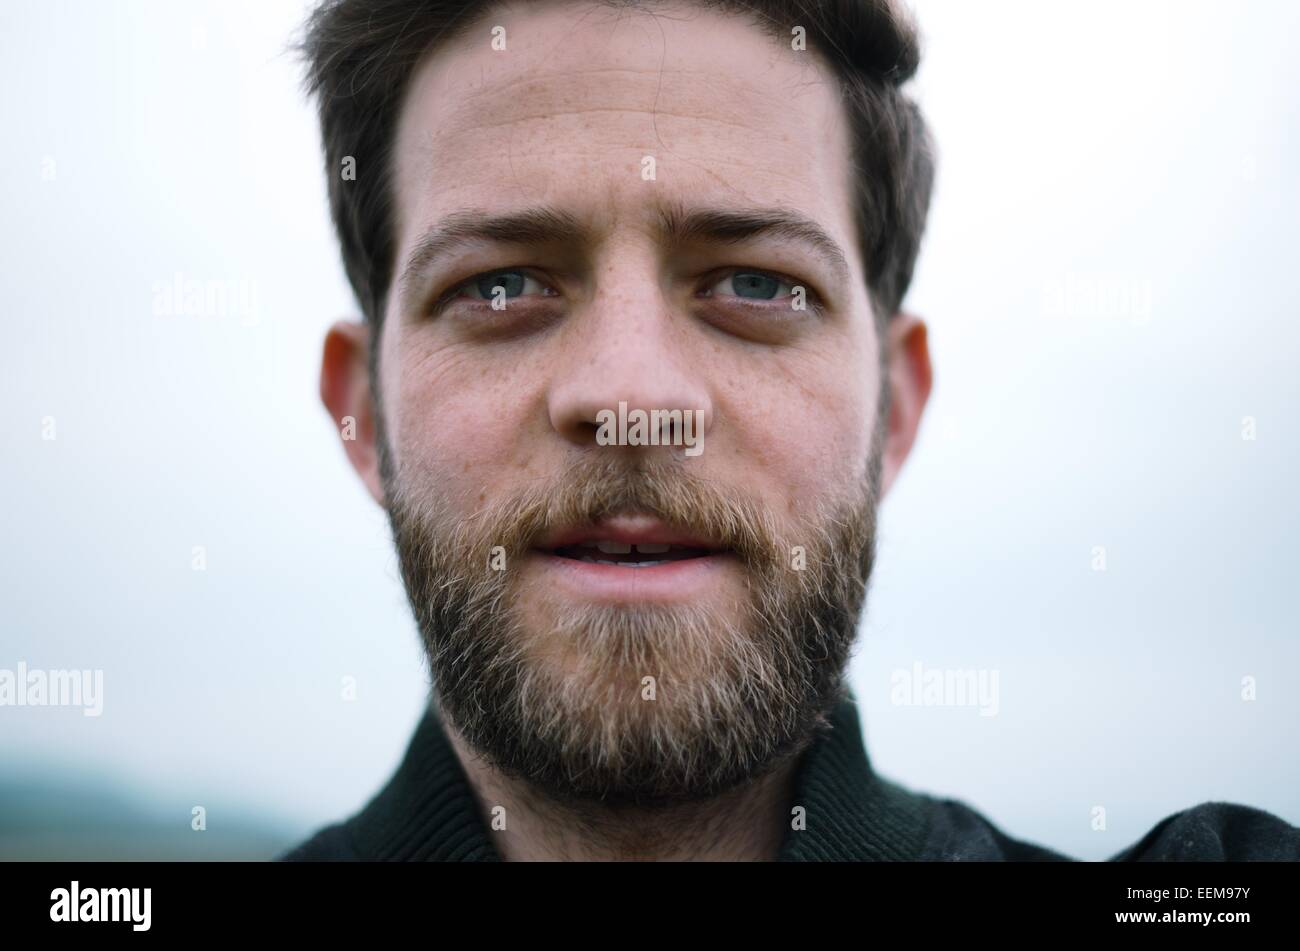 Homme avec barbe looking at camera Photo Stock